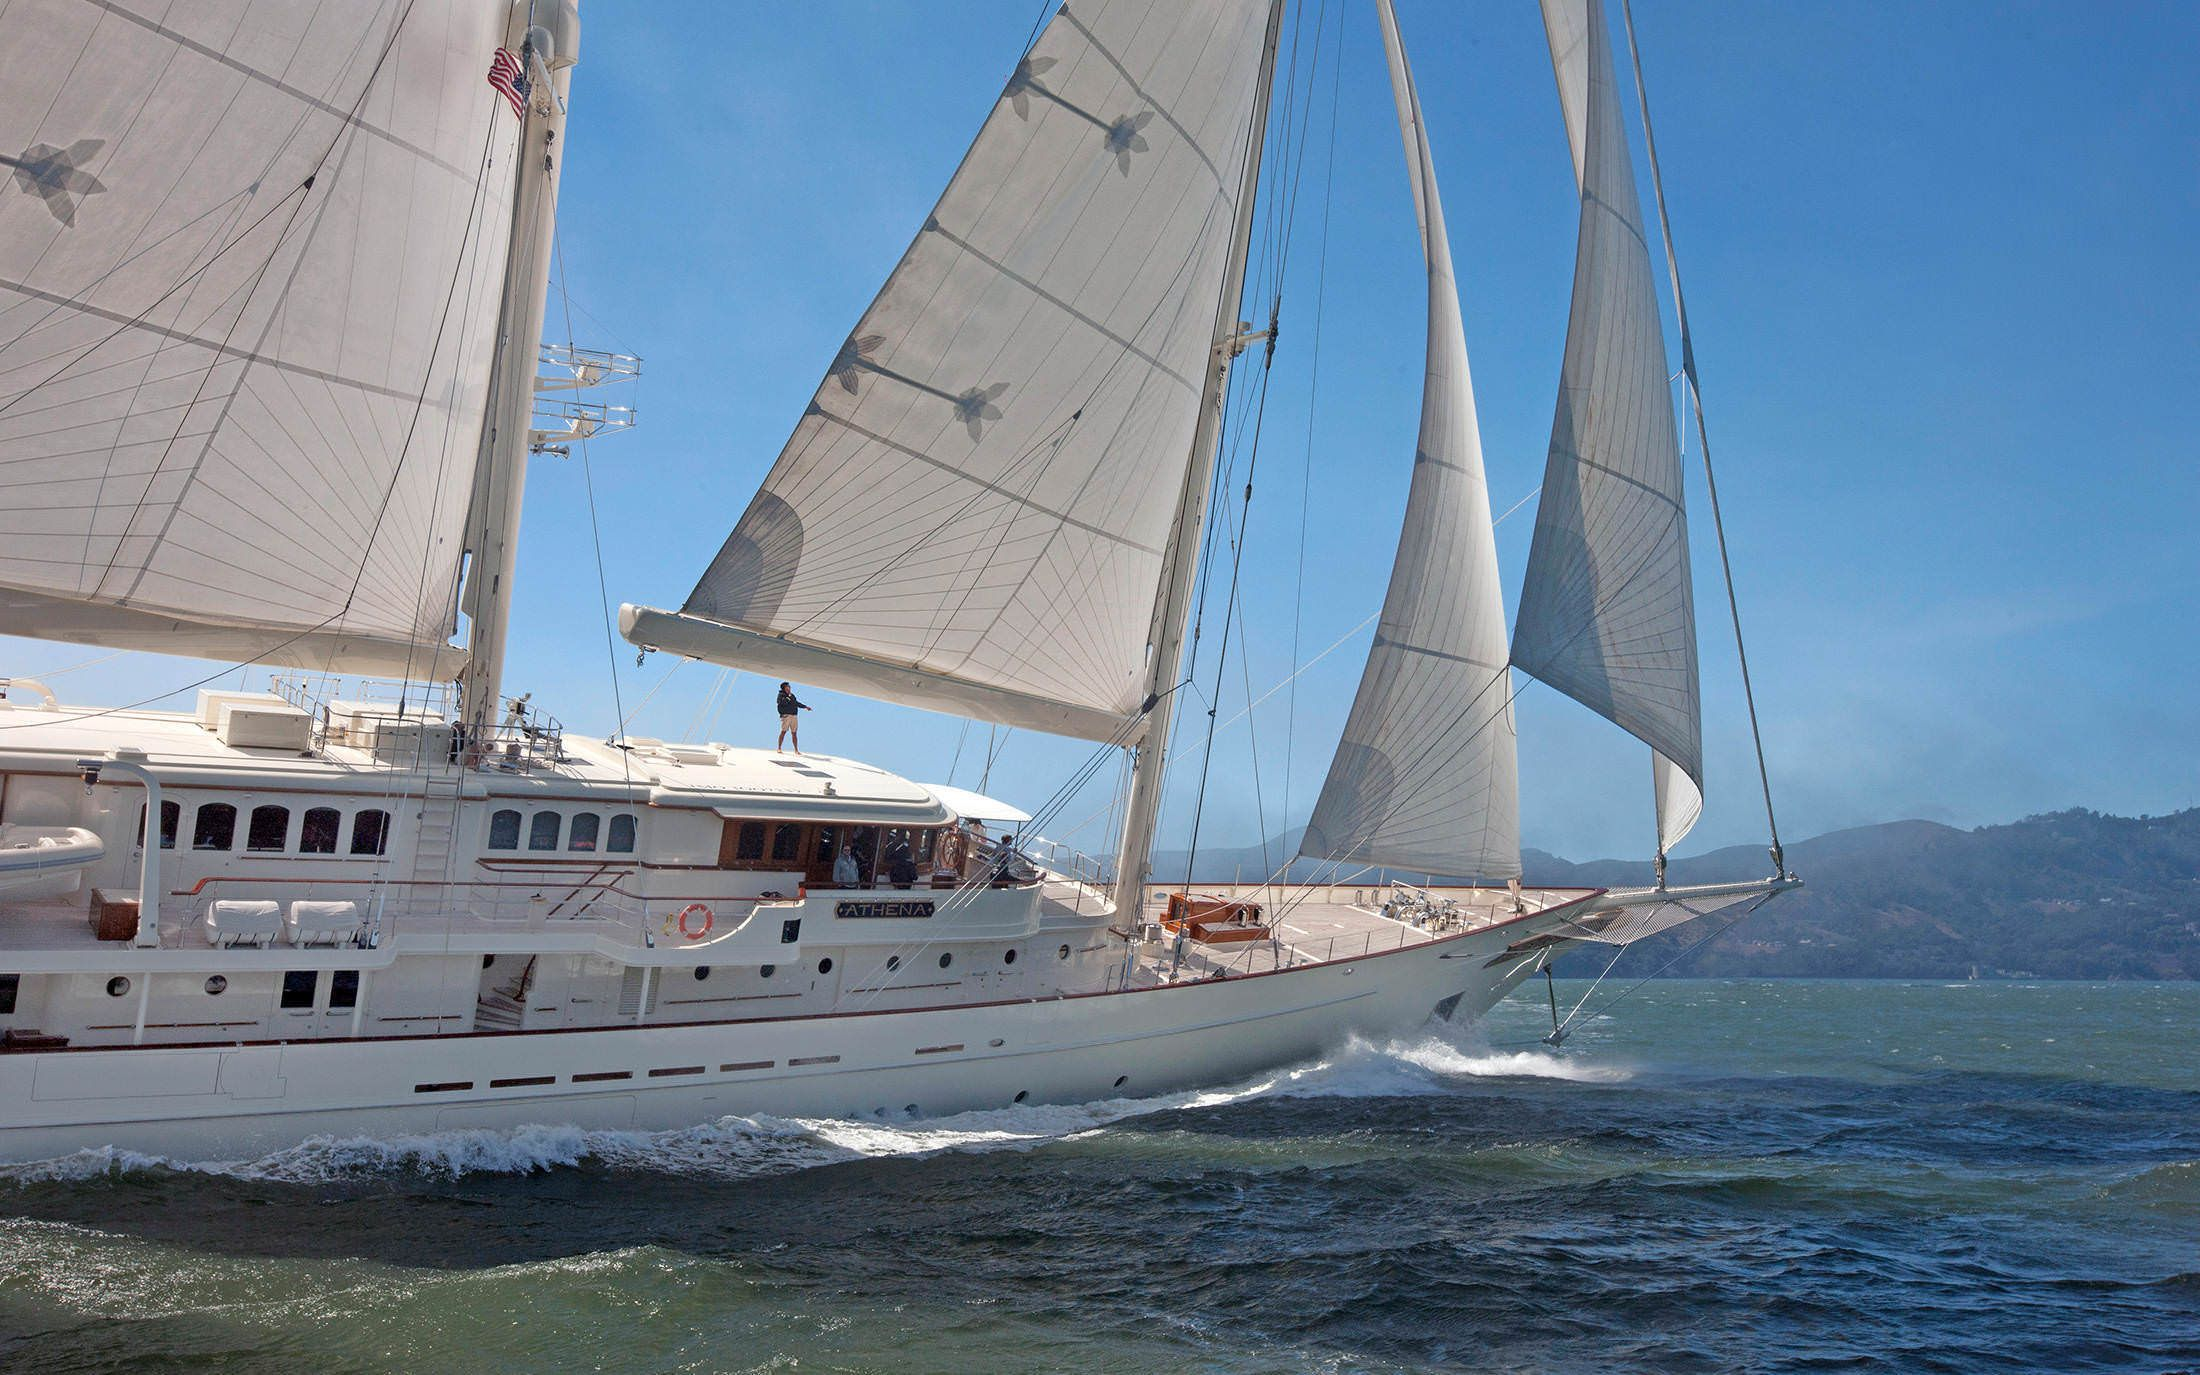 athena yacht - Google Search | Yacht for sale, Super yachts